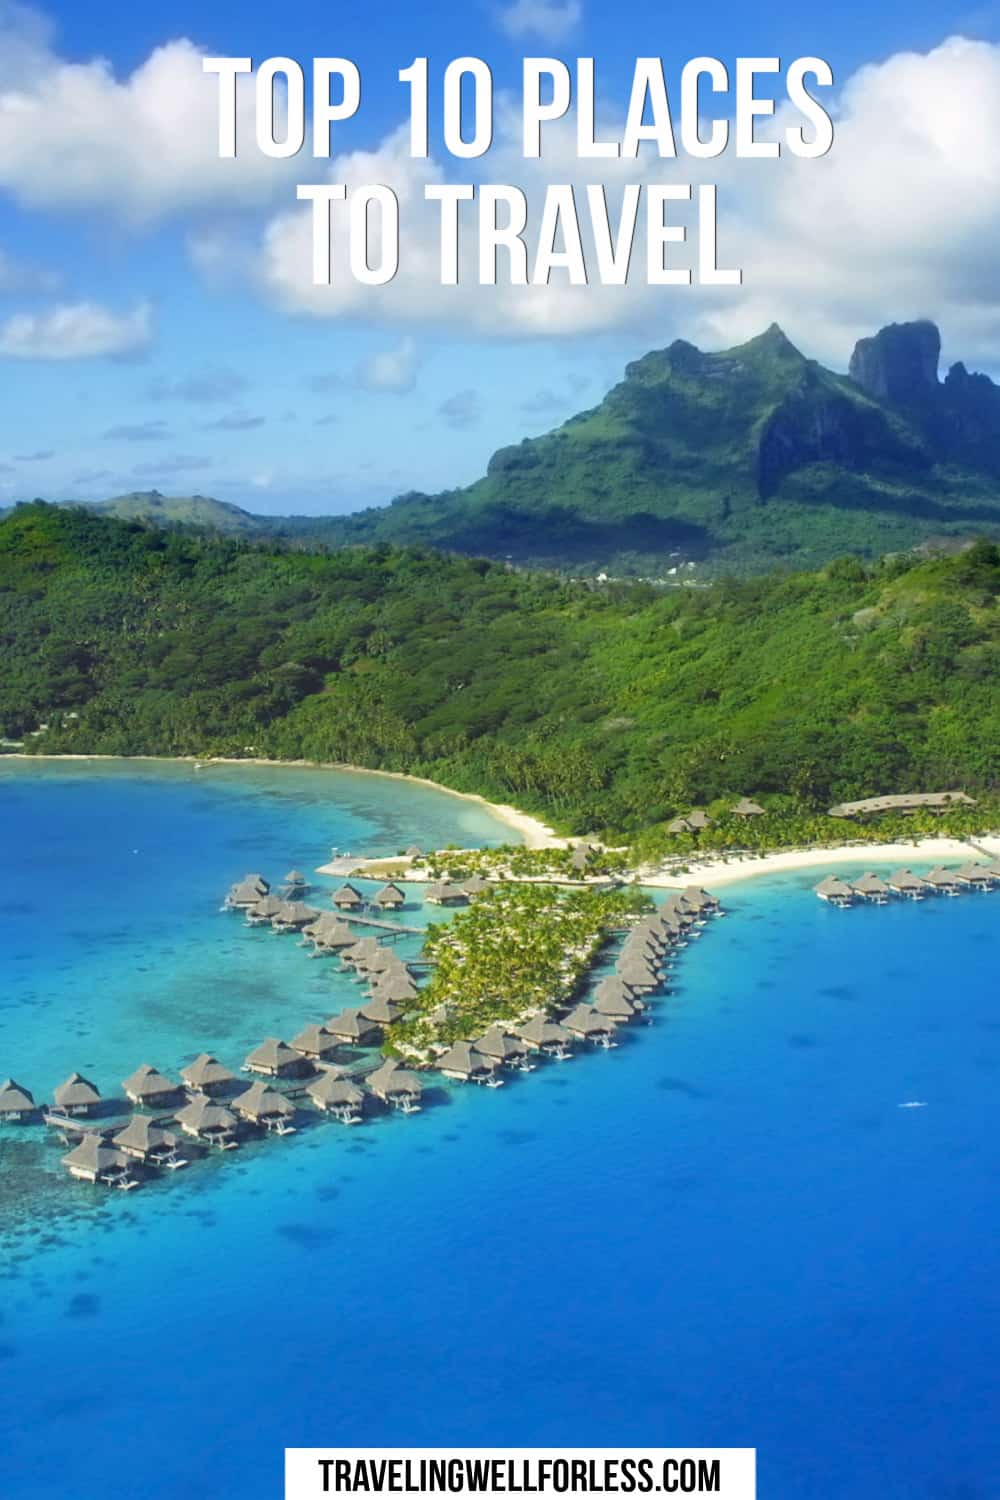 Top 10 Places to Travel